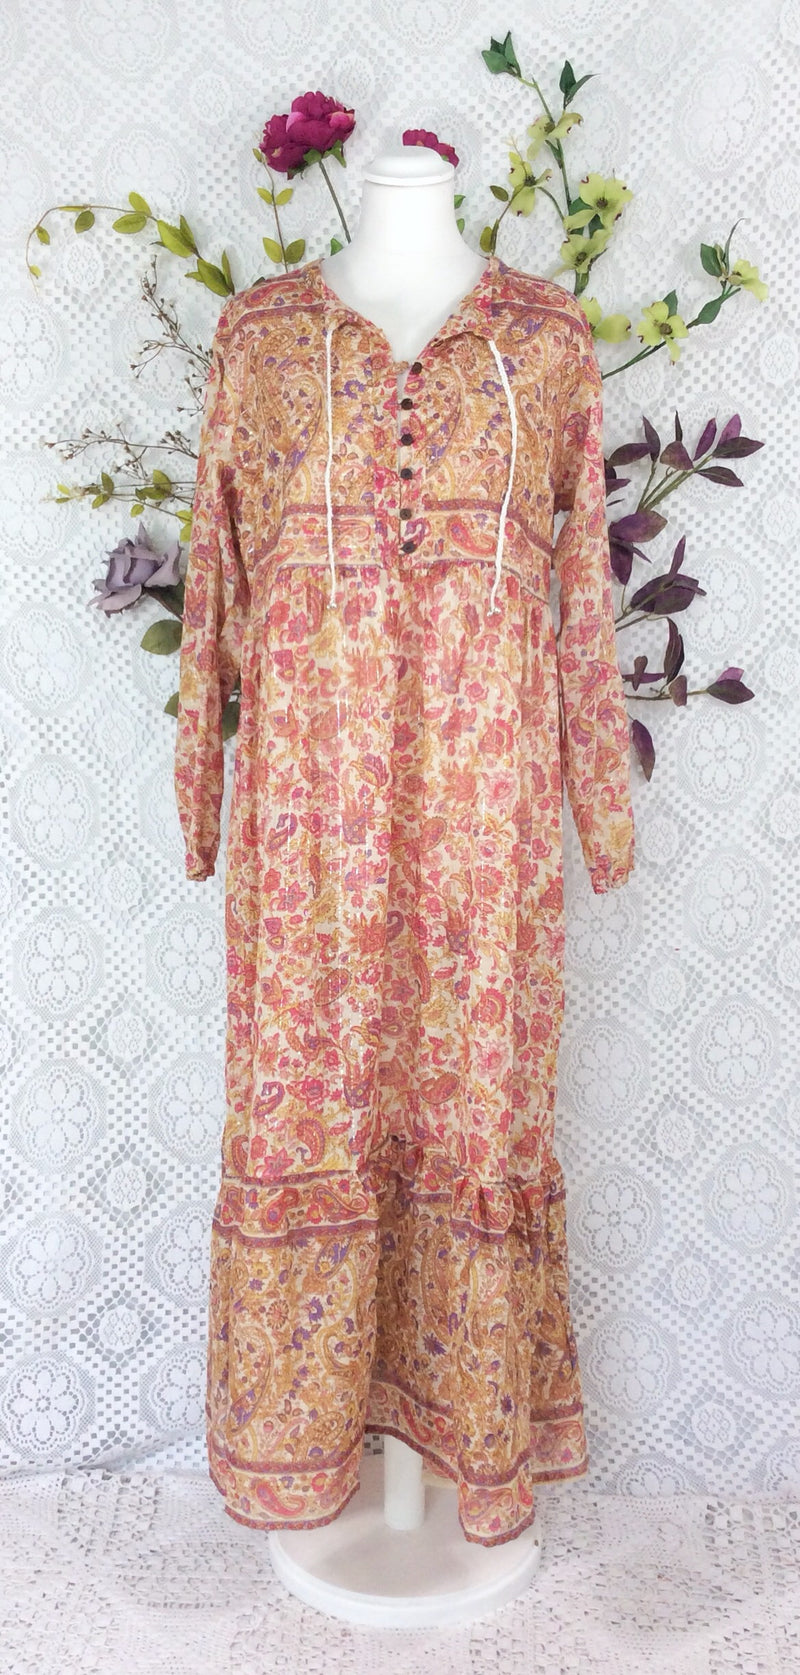 Florence Dress - Sparkly Indian Cotton Smock Dress - Pink Cream & Mauve - Size XS